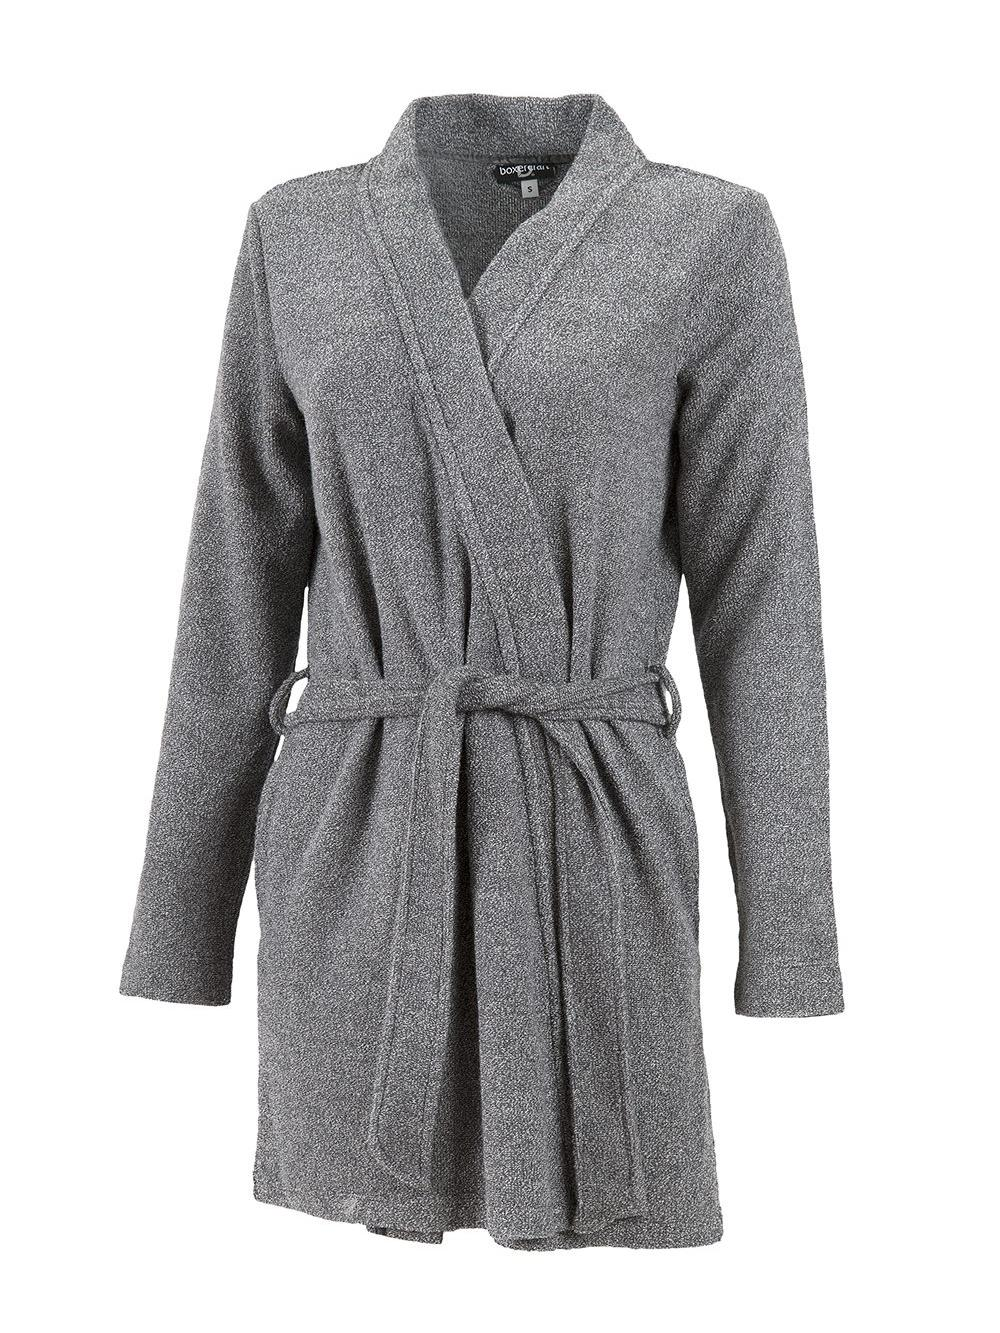 Boxercraft Fleece Women's Cozy Robe